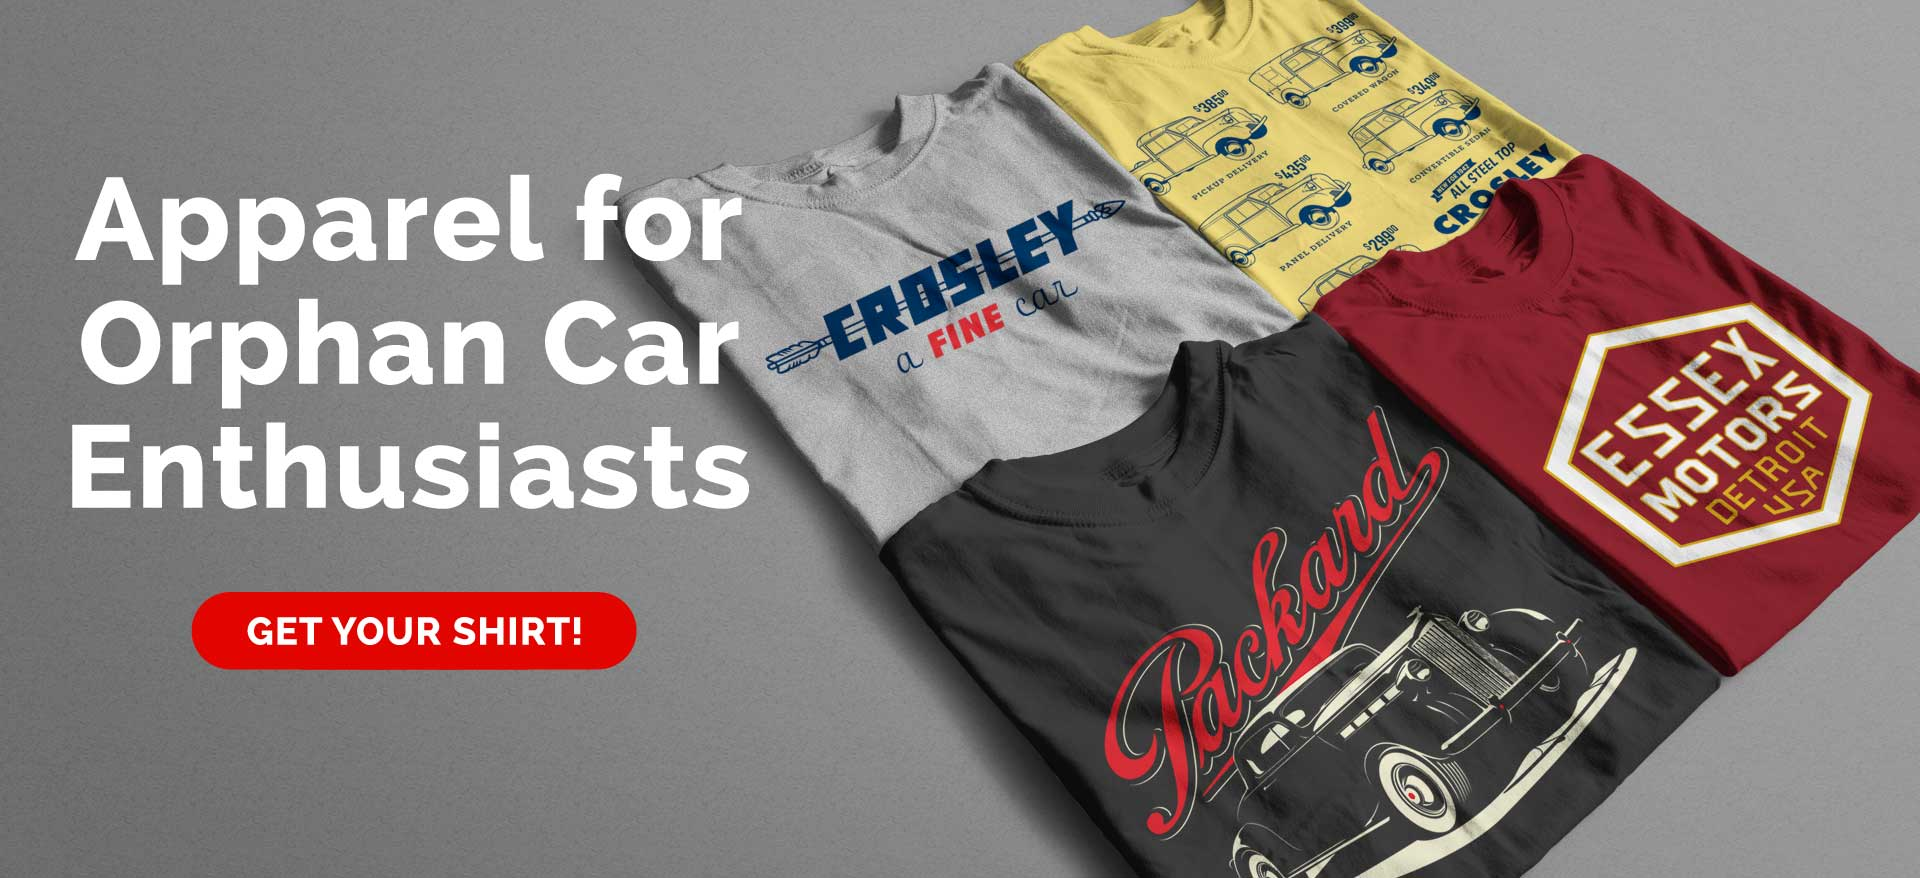 Apparel for Orphan Car Enthusiasts. Get your shirt!